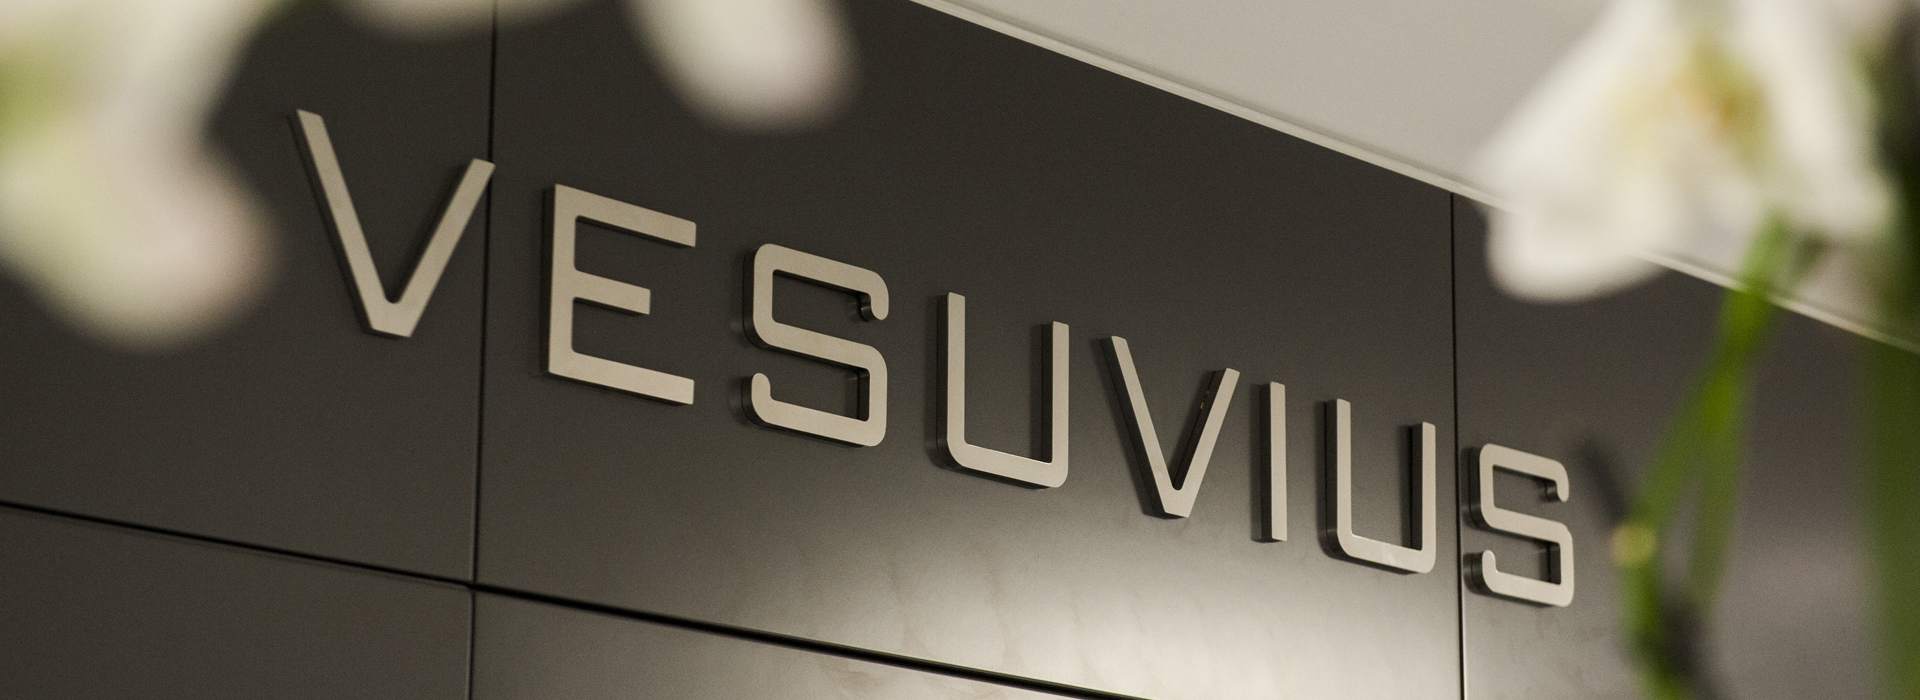 Vesuvius plc announce a full year dividend increased by 3.5% to 20.5 pence per share